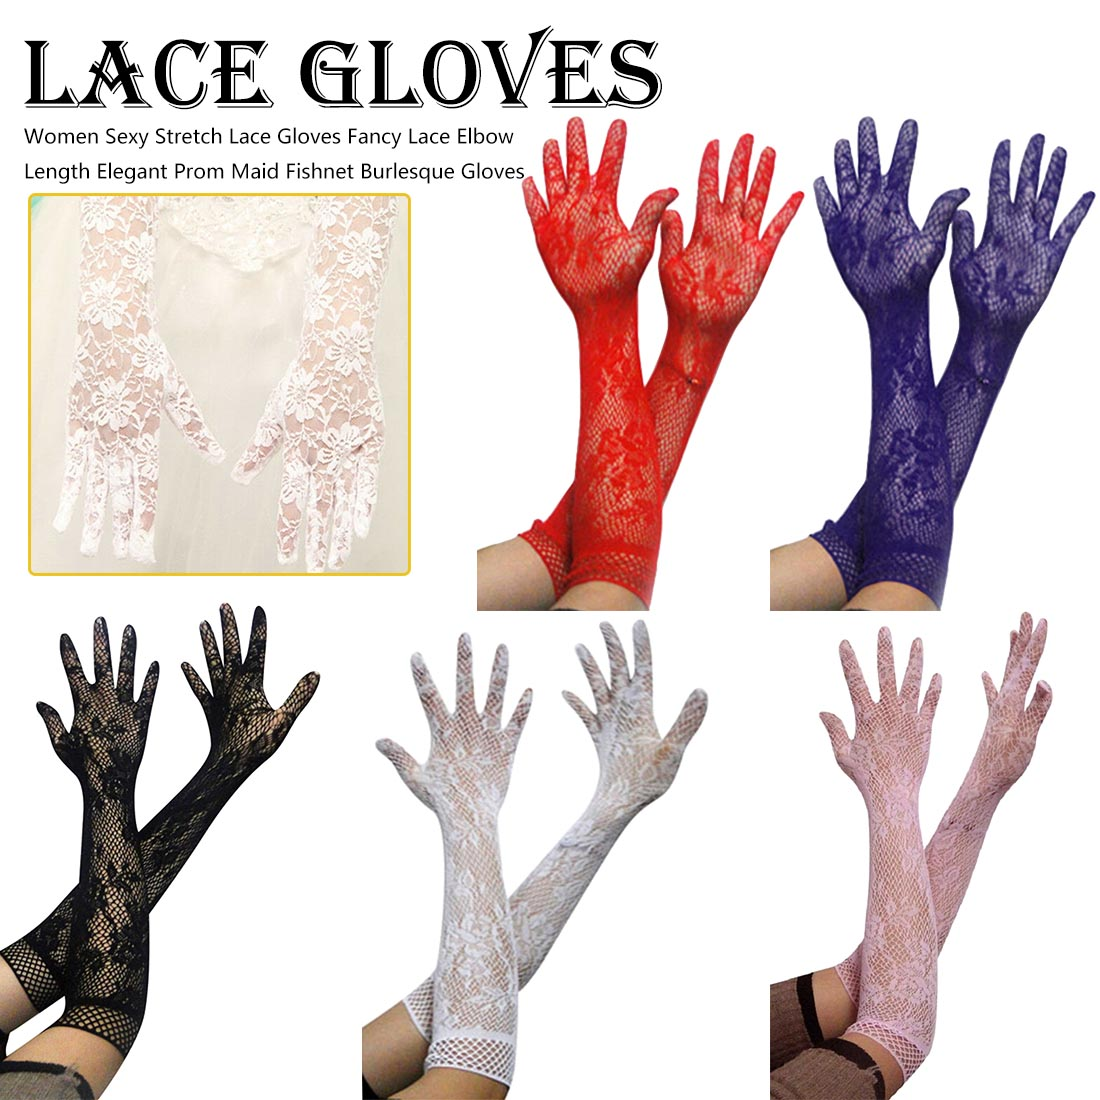 Lace Gloves Fancy Lace Elbow Length Elegant Prom Maid Fishnet Burlesque Gloves Women Sexy Stretch